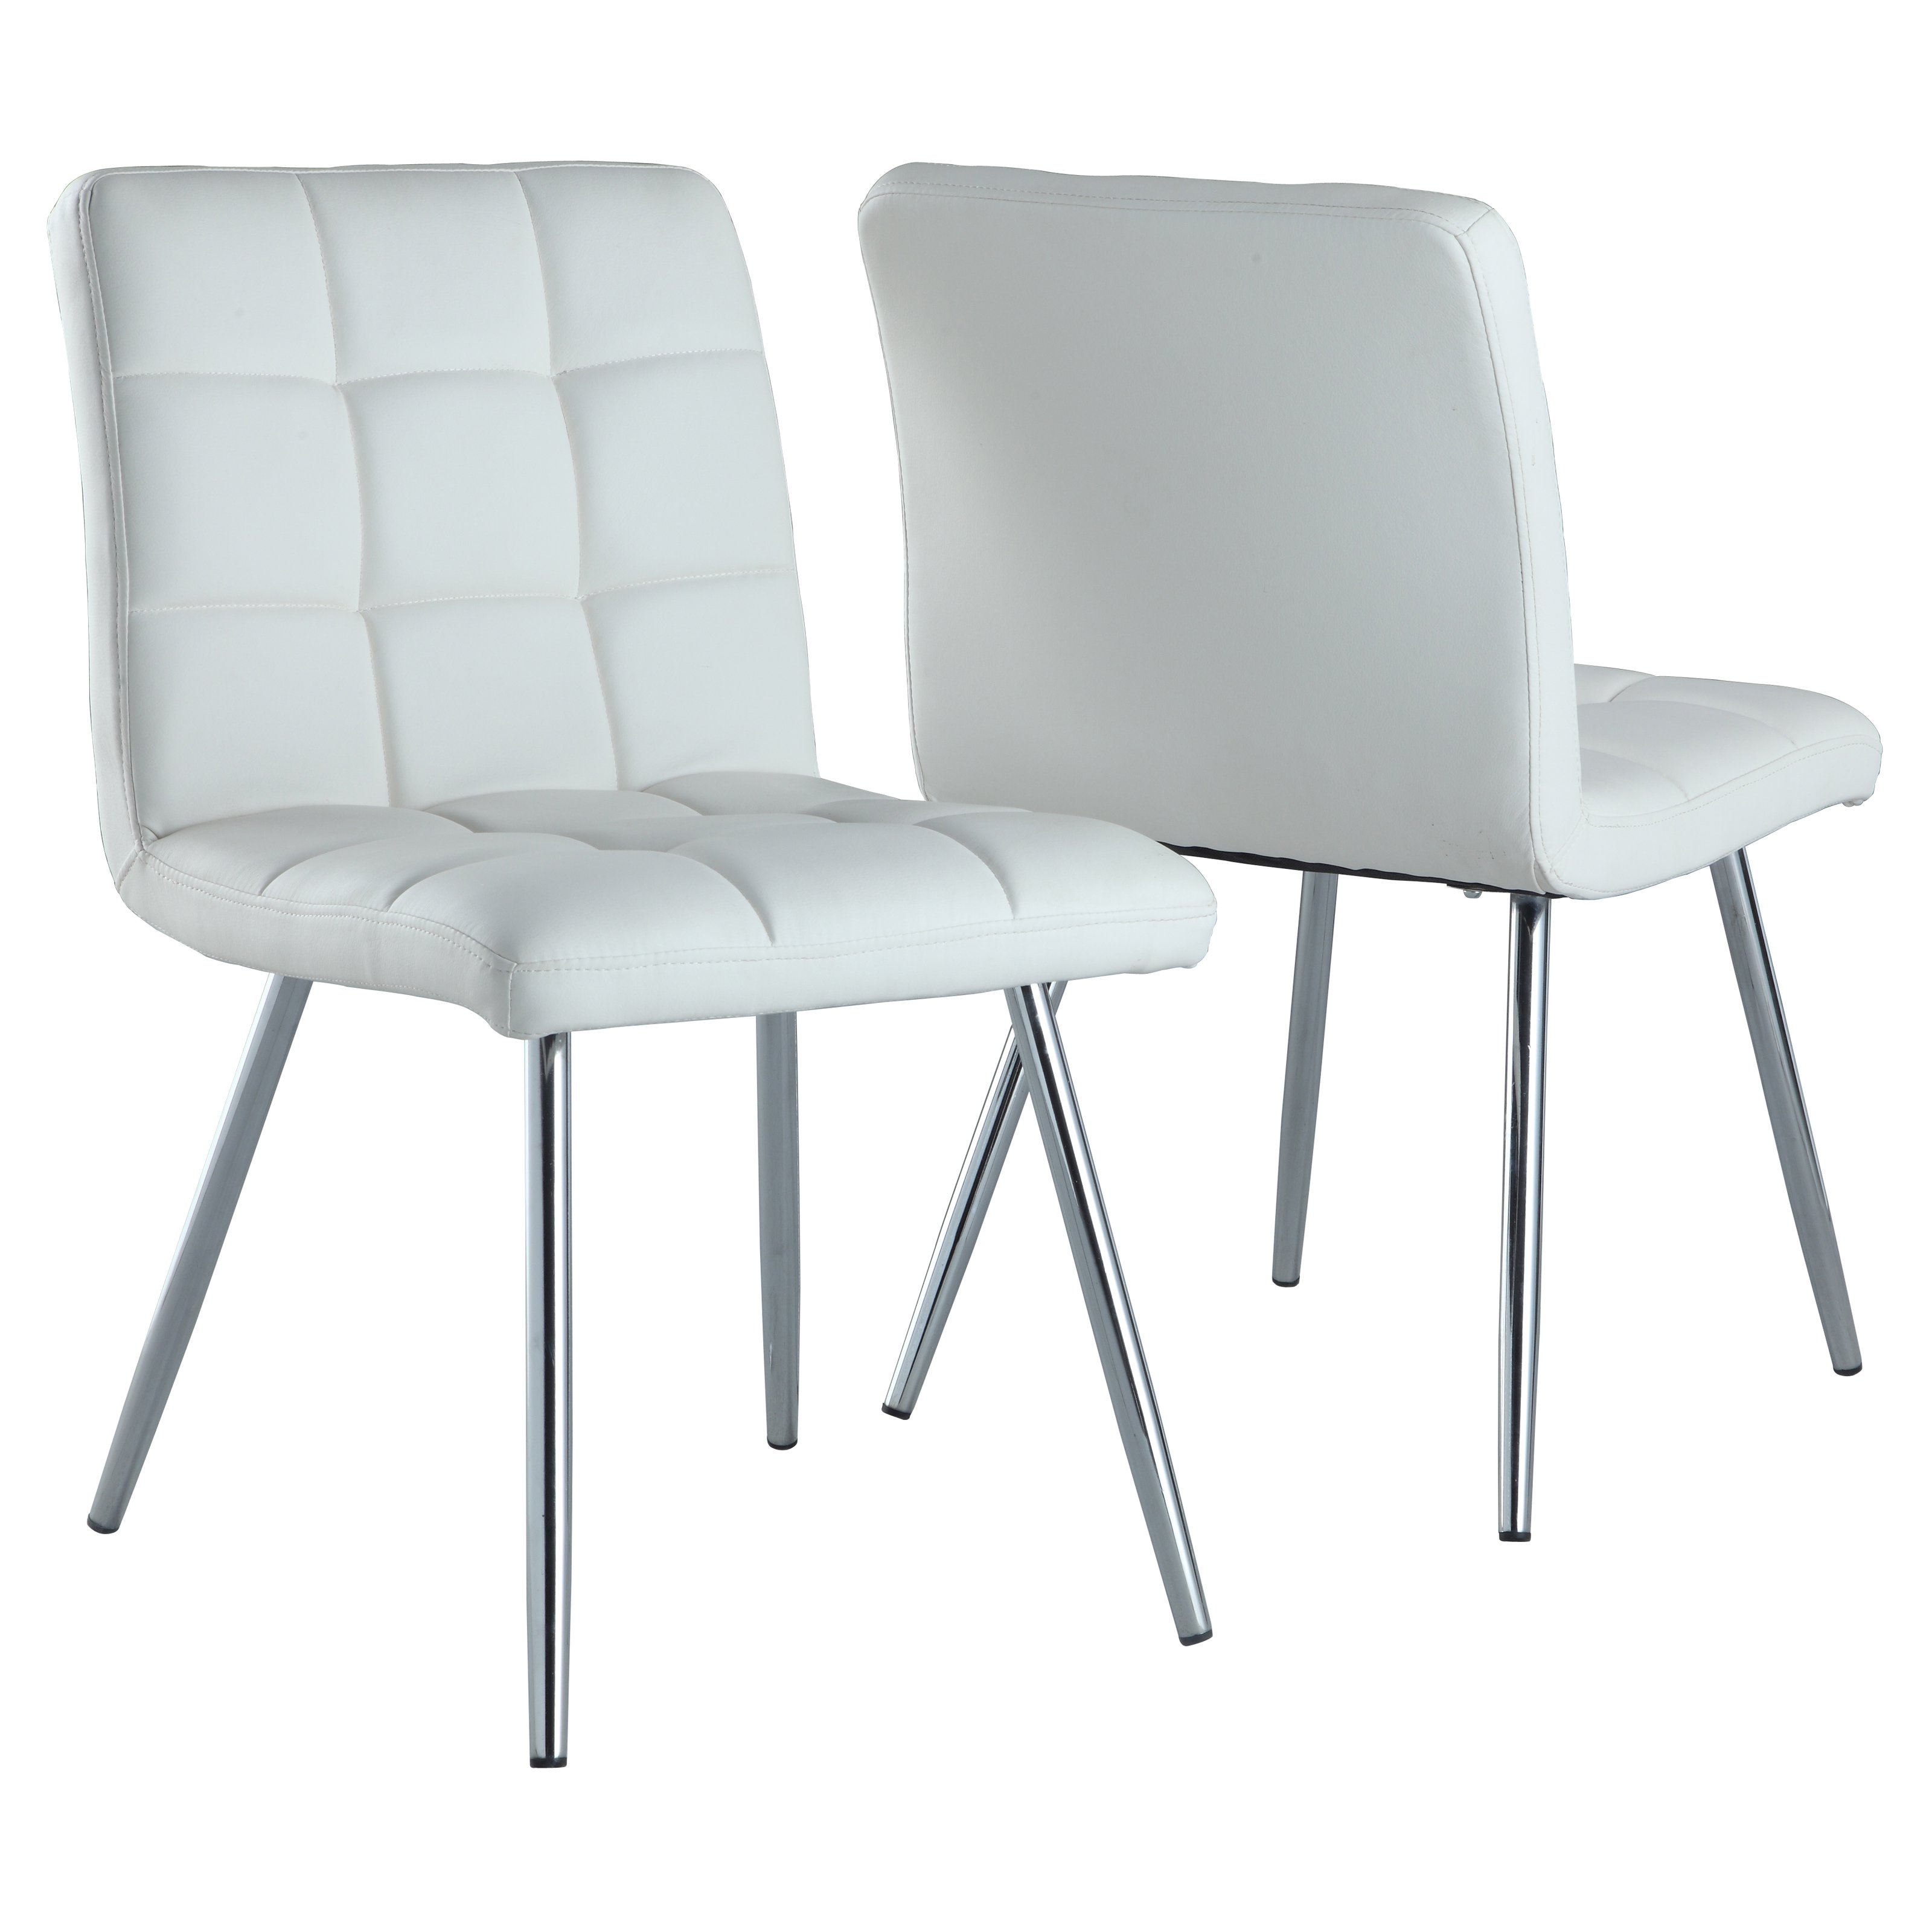 "Monarch Dining Chair 2Pcs / 32""H / White LeatherLook / Chrome"